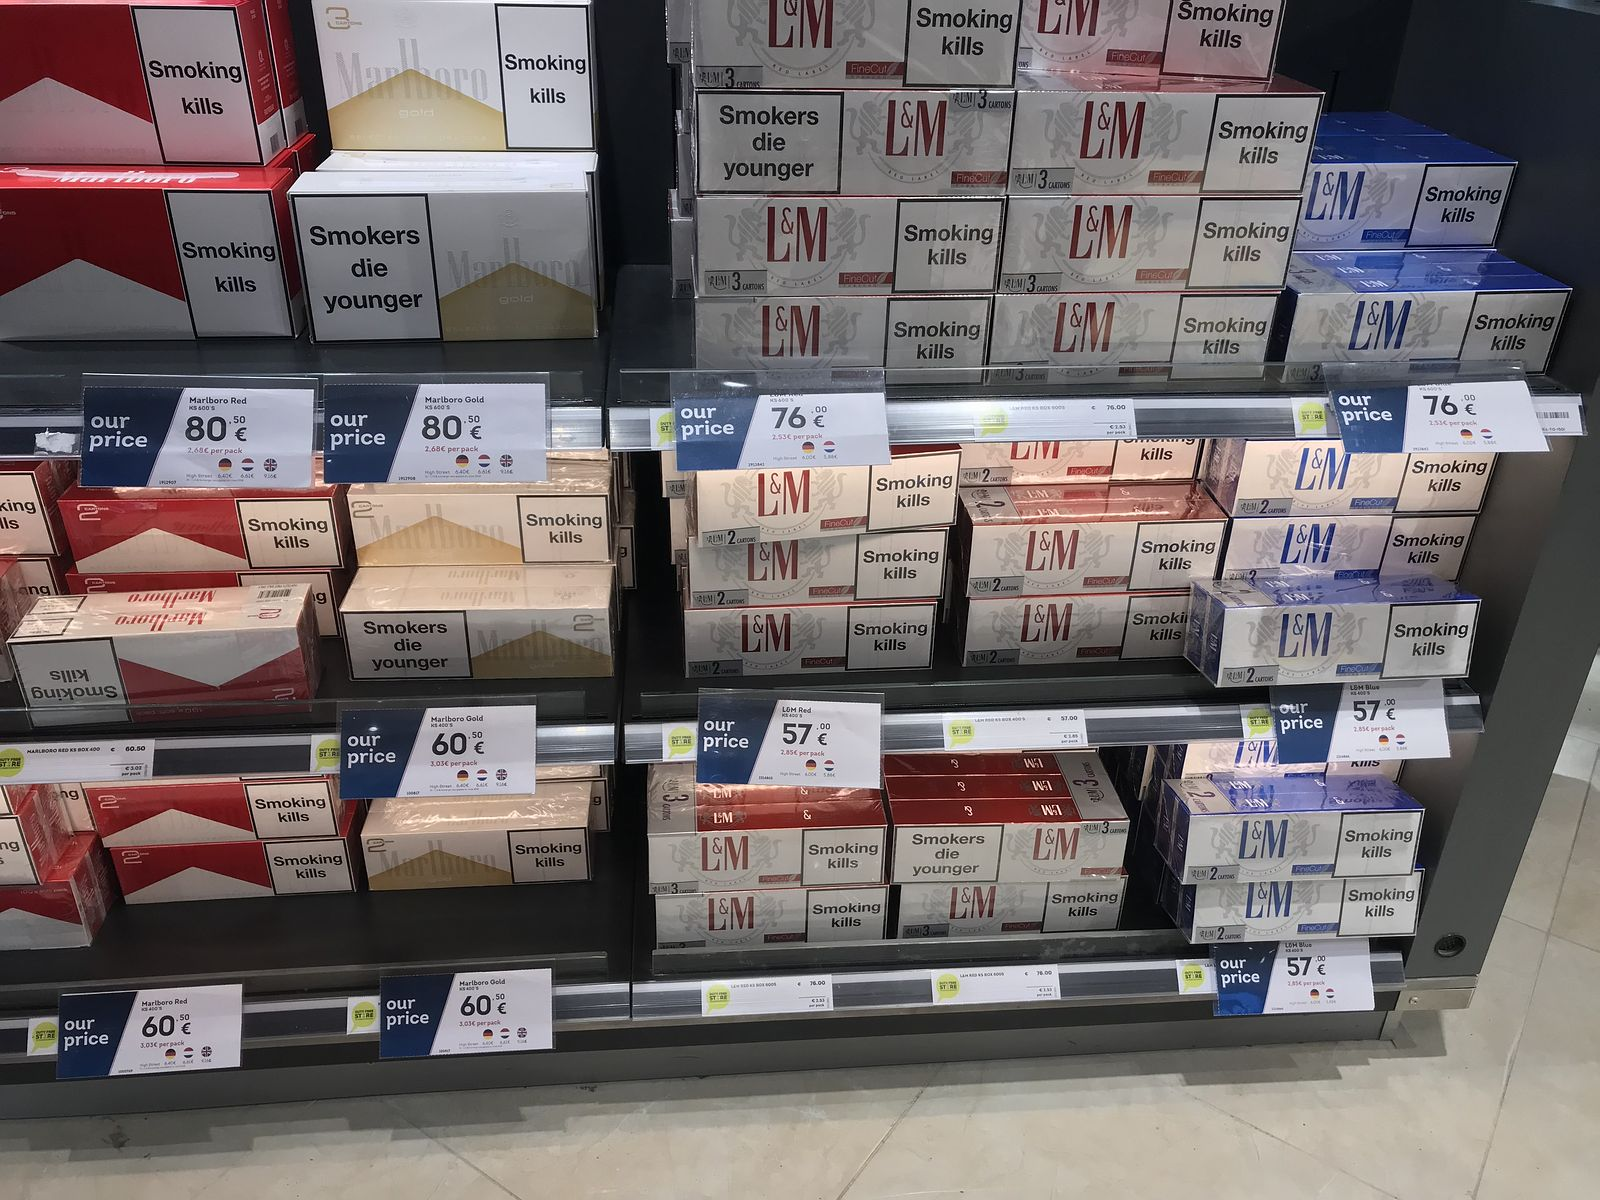 Duty free Antalya, august 2019, cigarettes